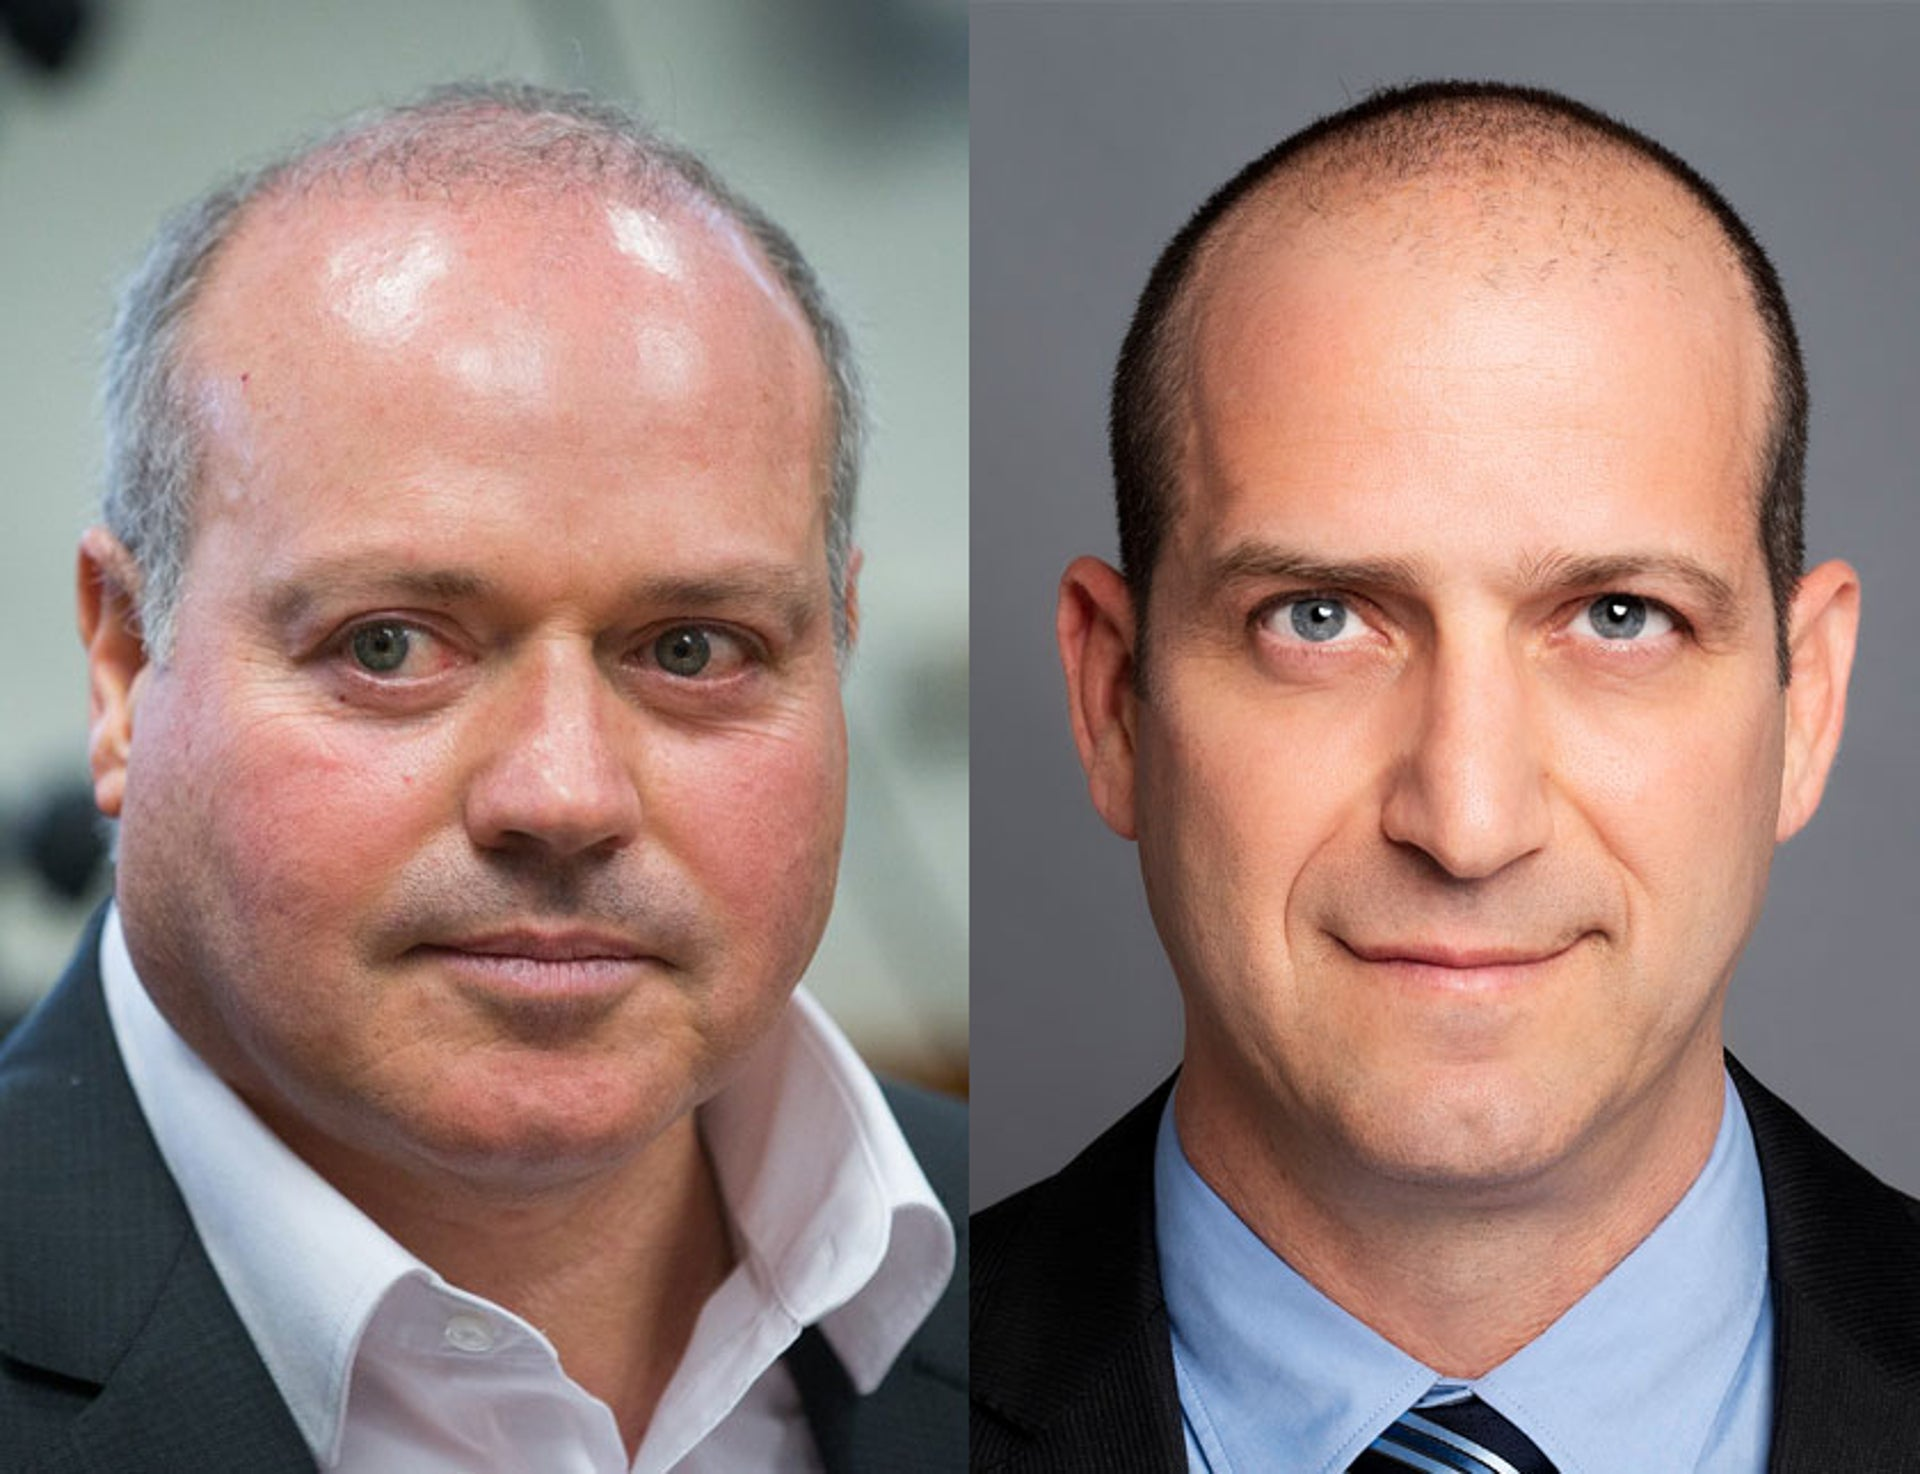 Harel CEO Michel Siboni (left) and Migdal CEO Ran Oz